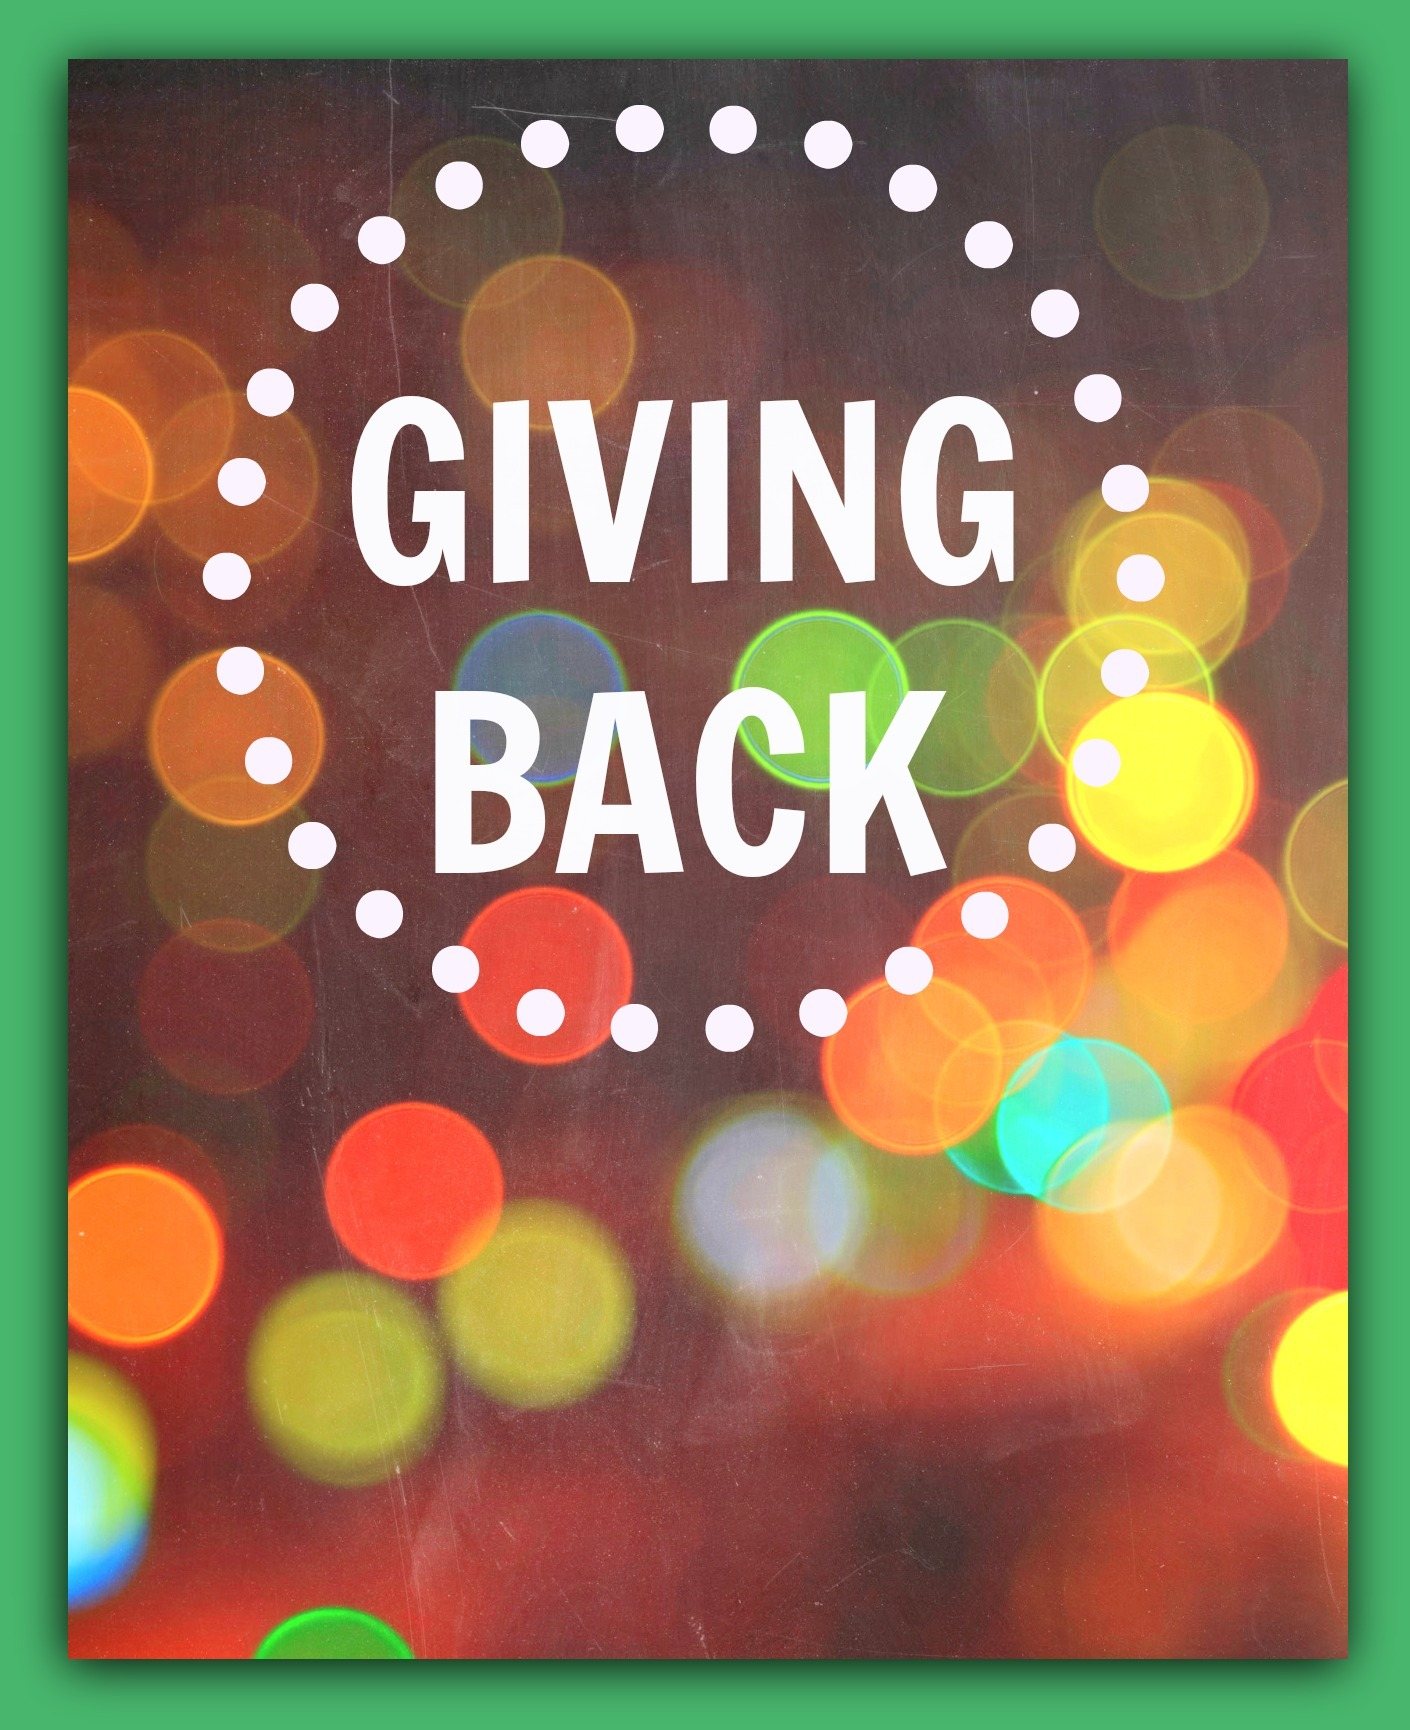 8dbf817c6261f7e2ff84_GIVING-BACK.jpg